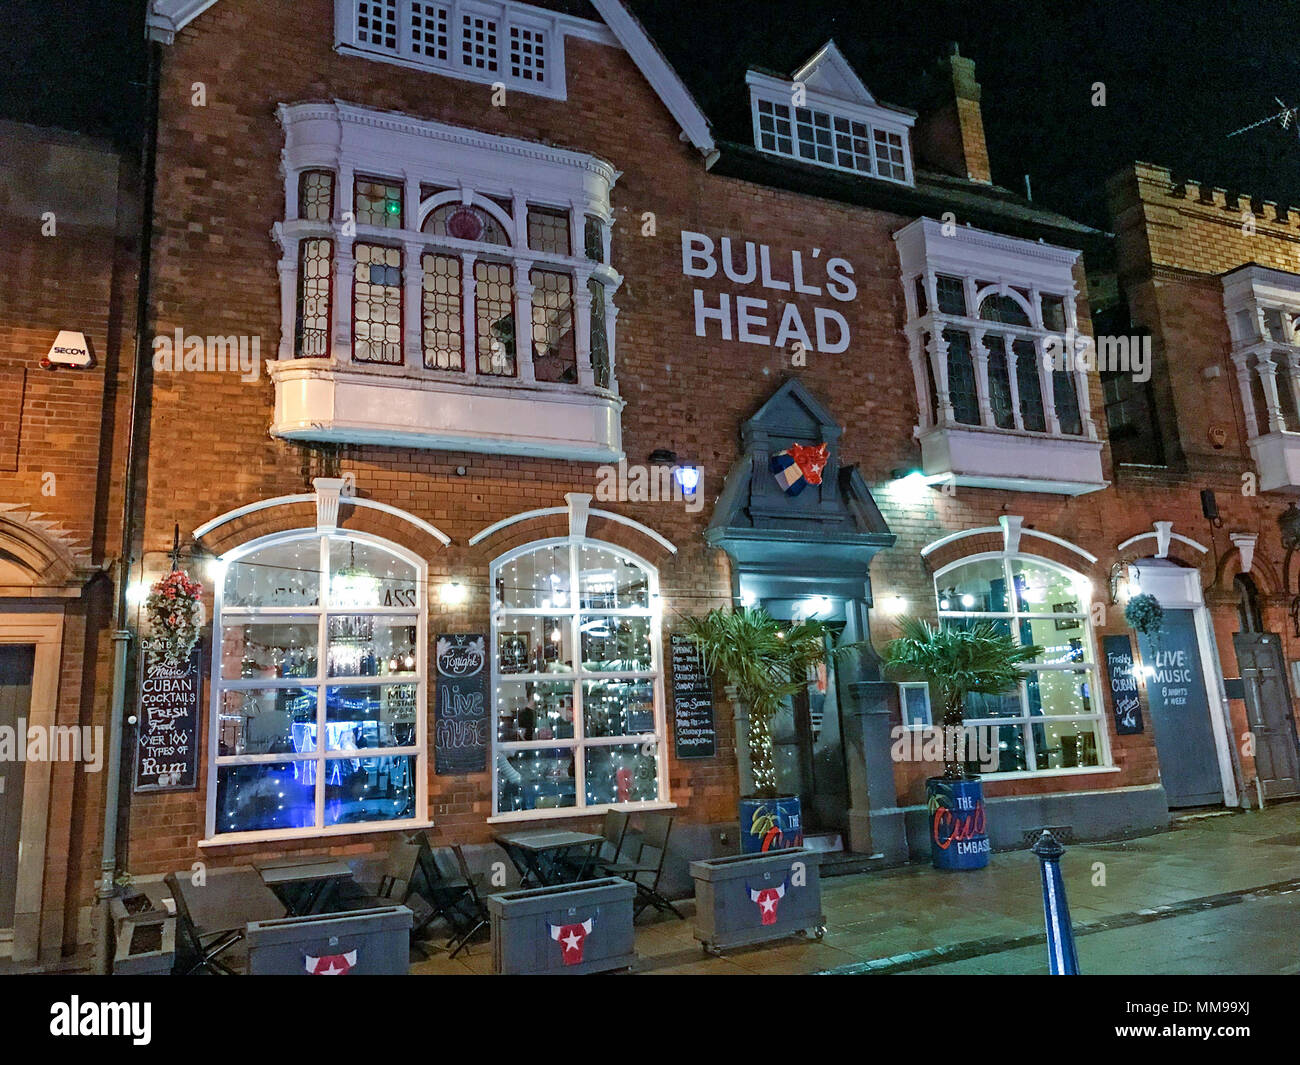 Bulls Head pub at night, 19 St Mary's Row, Moseley, Birmingham B13 8HW, UK - Stock Image